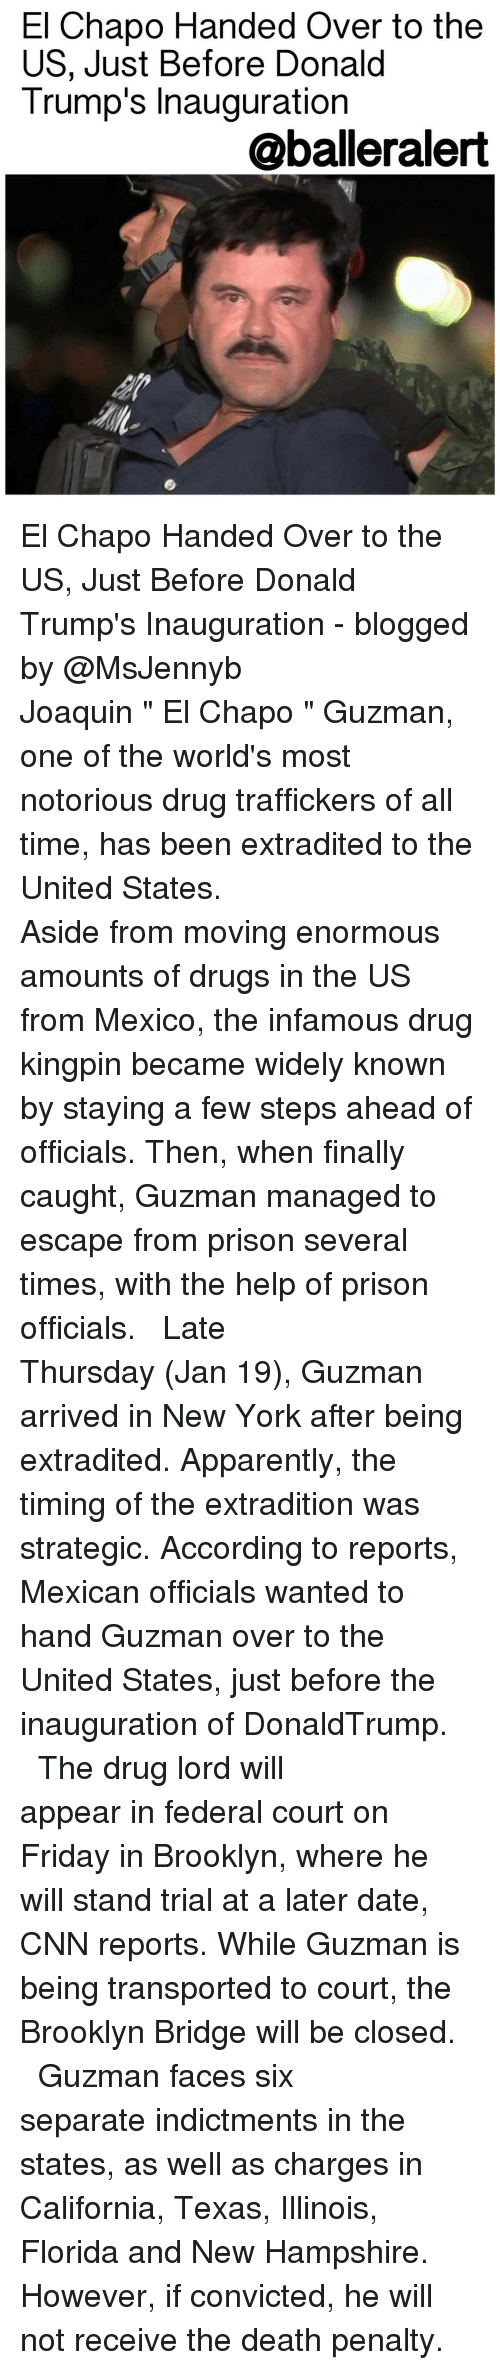 """El Chapo, Memes, and Brooklyn: El Chapo Handed Over to the  US, Just Before Donald  Trump's Inauguration  aballeralert El Chapo Handed Over to the US, Just Before Donald Trump's Inauguration - blogged by @MsJennyb ⠀⠀⠀⠀⠀⠀⠀⠀⠀ ⠀⠀⠀⠀⠀⠀⠀⠀⠀ Joaquin """" El Chapo """" Guzman, one of the world's most notorious drug traffickers of all time, has been extradited to the United States. ⠀⠀⠀⠀⠀⠀⠀⠀⠀ ⠀⠀⠀⠀⠀⠀⠀⠀⠀ Aside from moving enormous amounts of drugs in the US from Mexico, the infamous drug kingpin became widely known by staying a few steps ahead of officials. Then, when finally caught, Guzman managed to escape from prison several times, with the help of prison officials. ⠀⠀⠀⠀⠀⠀⠀⠀⠀ ⠀⠀⠀⠀⠀⠀⠀⠀⠀ Late Thursday (Jan 19), Guzman arrived in New York after being extradited. Apparently, the timing of the extradition was strategic. According to reports, Mexican officials wanted to hand Guzman over to the United States, just before the inauguration of DonaldTrump. ⠀⠀⠀⠀⠀⠀⠀⠀⠀ ⠀⠀⠀⠀⠀⠀⠀⠀⠀ The drug lord will appear in federal court on Friday in Brooklyn, where he will stand trial at a later date, CNN reports. While Guzman is being transported to court, the Brooklyn Bridge will be closed. ⠀⠀⠀⠀⠀⠀⠀⠀⠀ ⠀⠀⠀⠀⠀⠀⠀⠀⠀ Guzman faces six separate indictments in the states, as well as charges in California, Texas, Illinois, Florida and New Hampshire. However, if convicted, he will not receive the death penalty."""